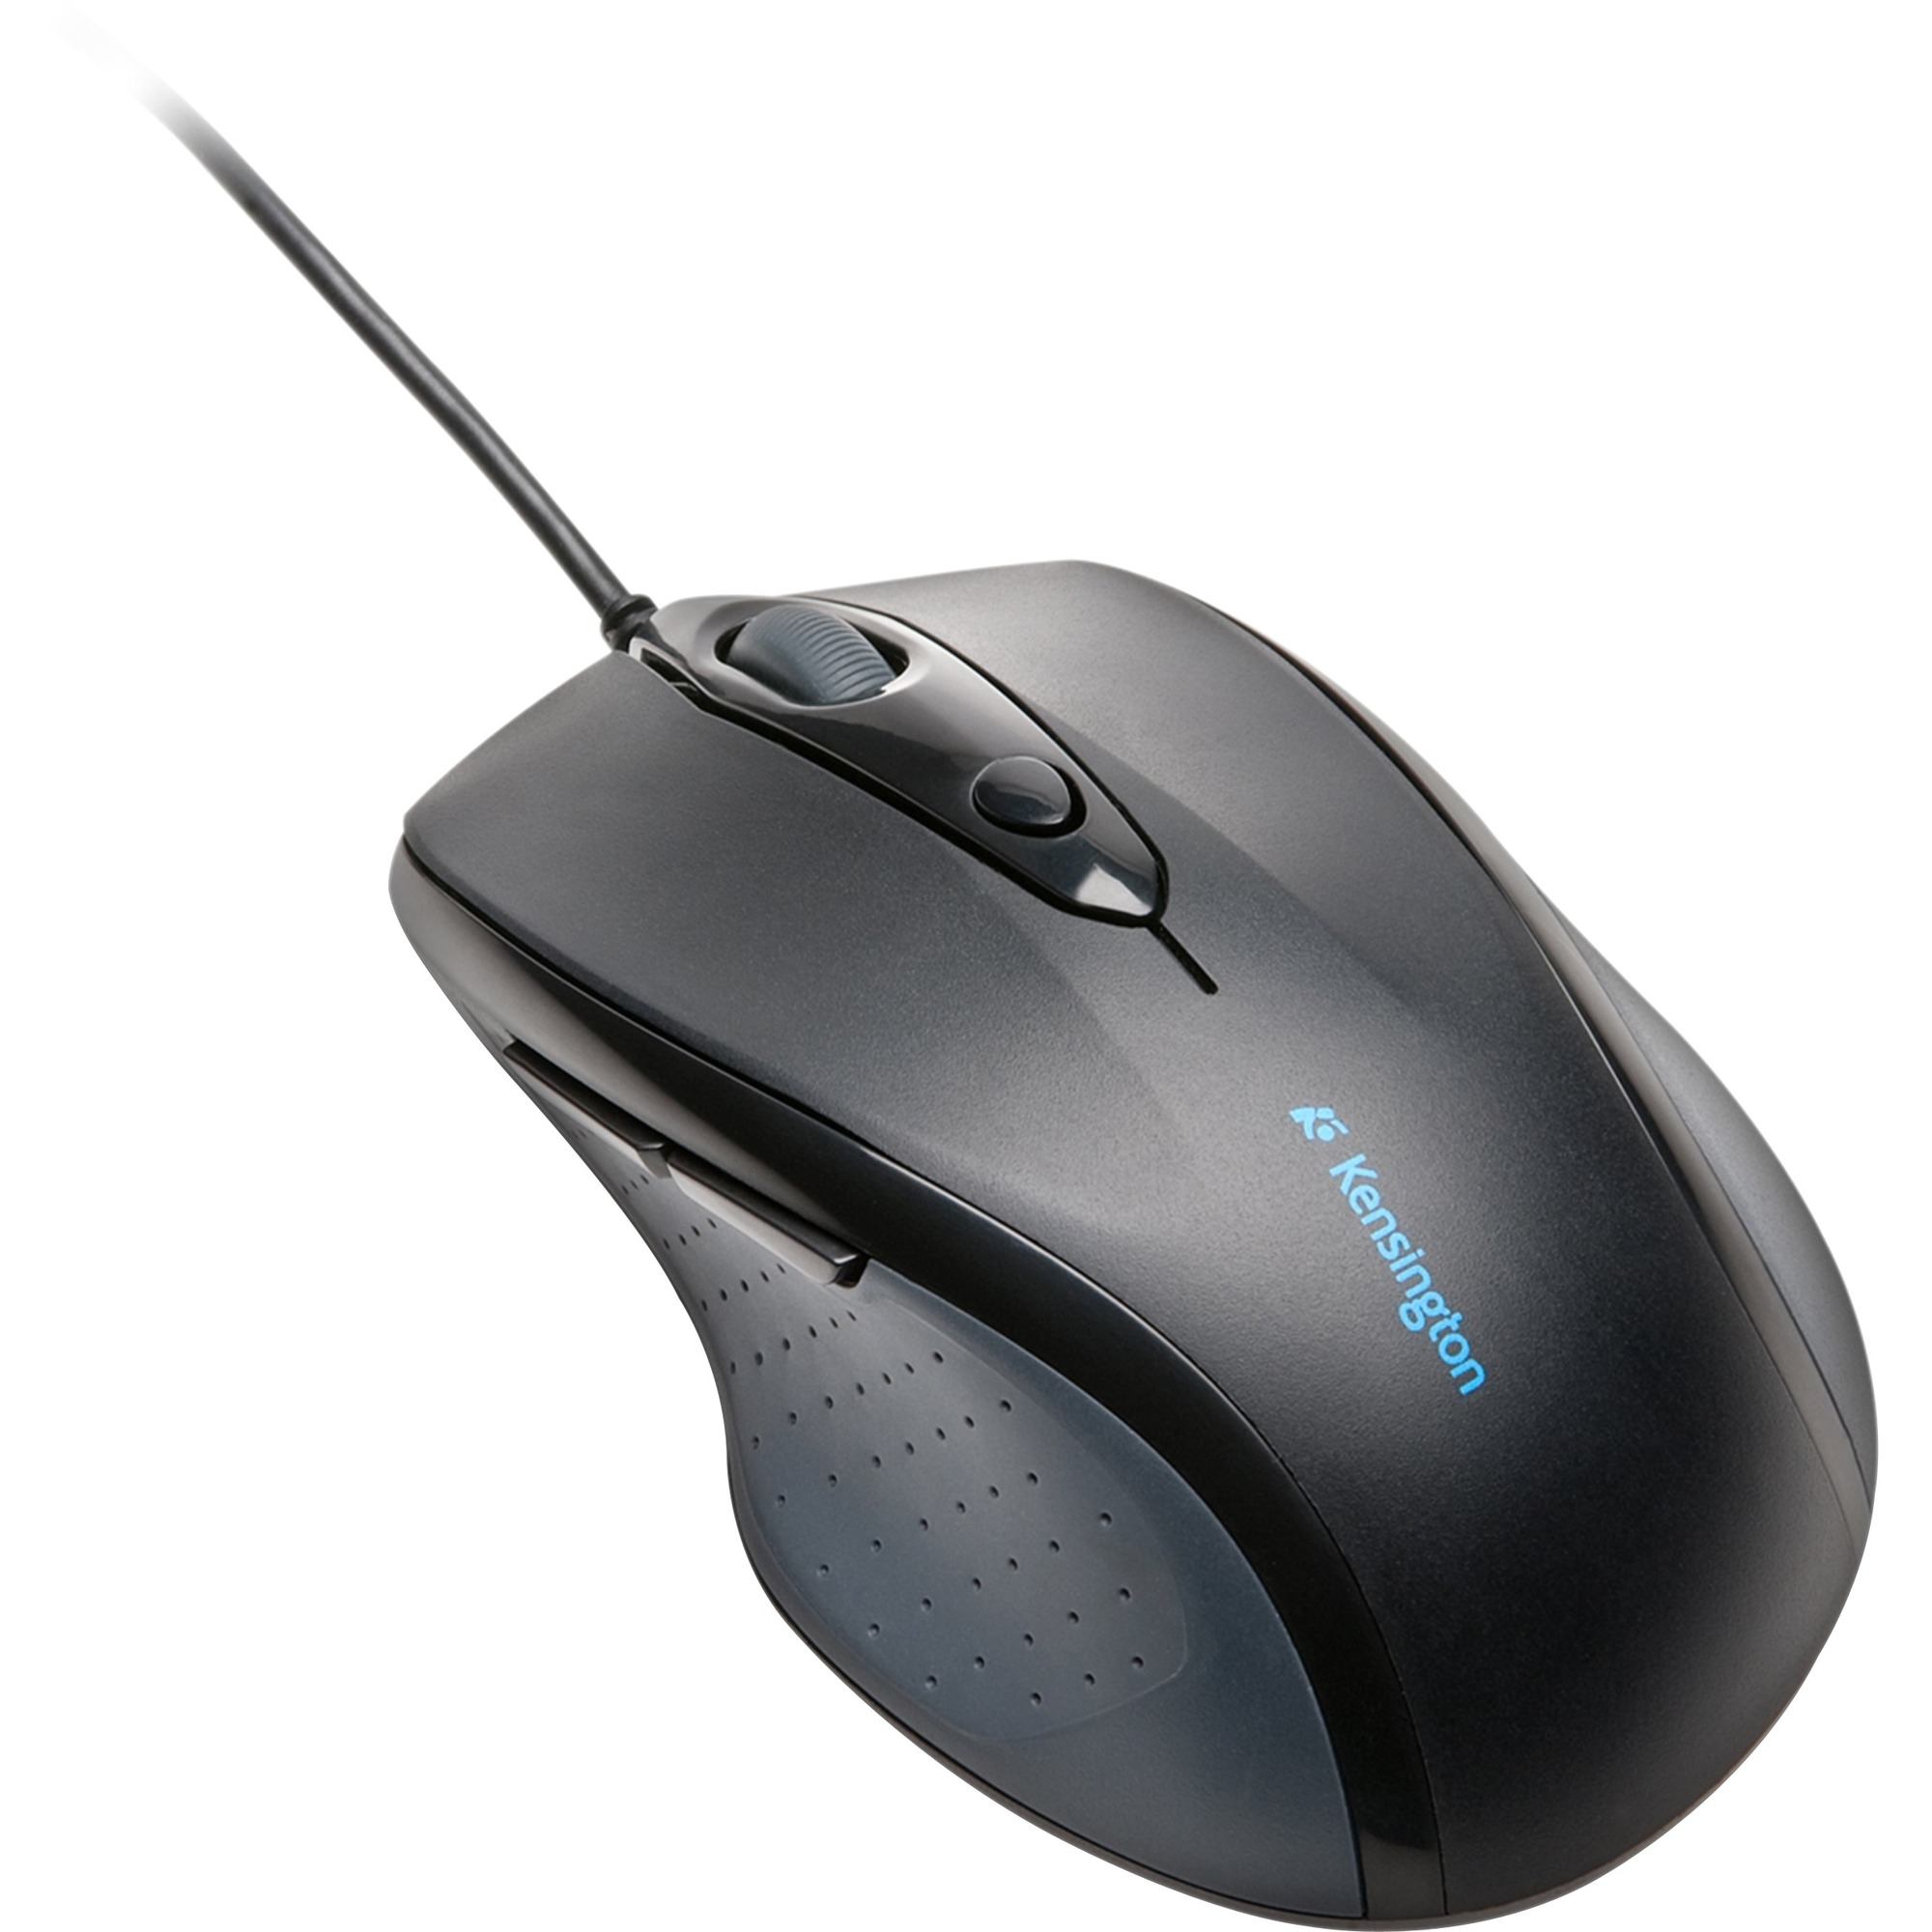 2ae88f76524 Kensington Pro-Fit Full-size Wired Mouse - Optical - Cable - Black - Retail  - USB - 2400 dpi - Scroll Wheel - Right-handed Only